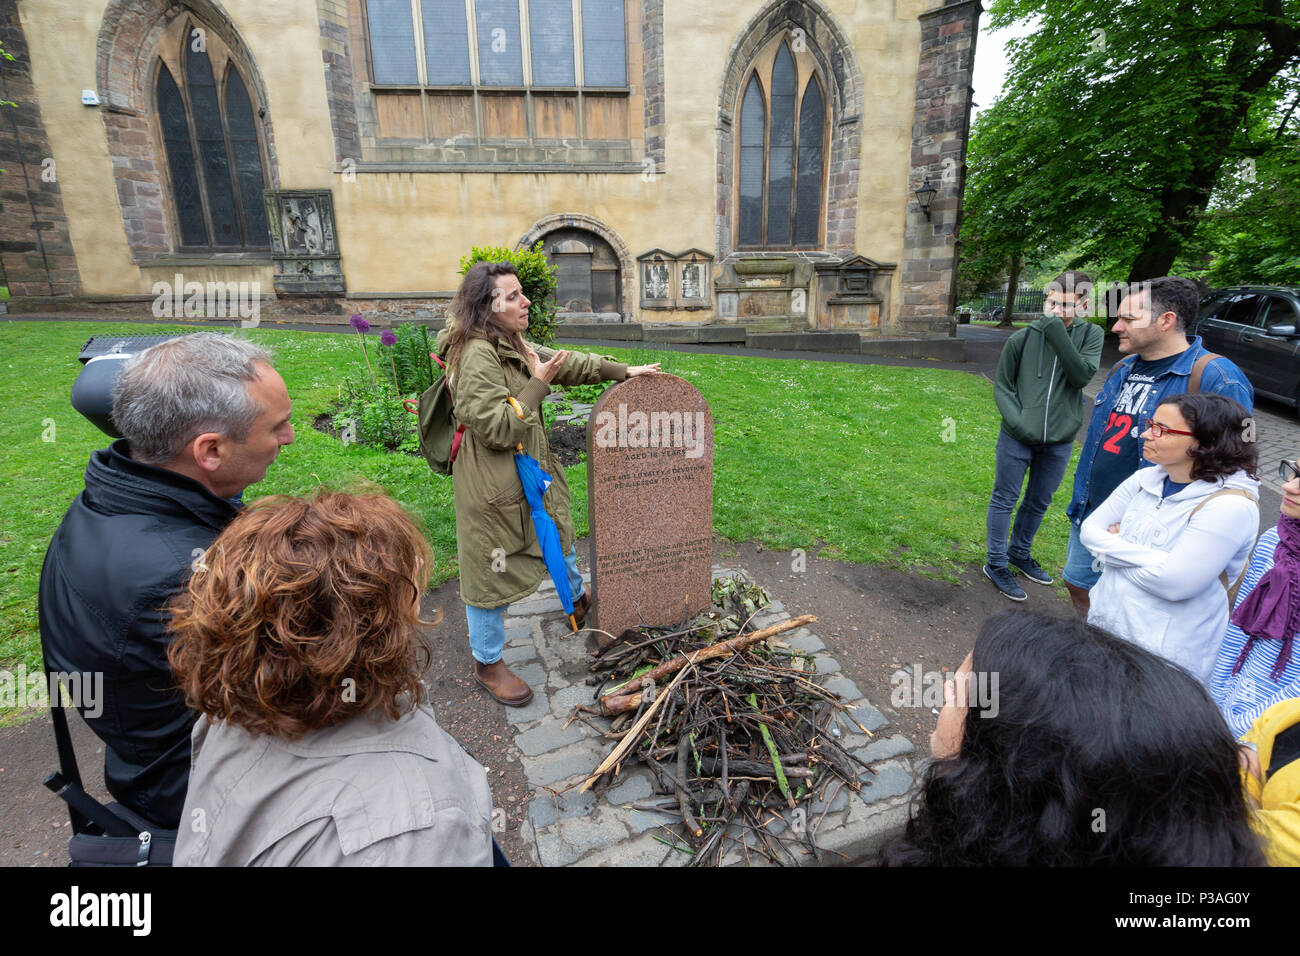 Tourists on a guided tour of edinburgh visiting the grave of Greyfriars Bobby dog, Greyfriars Kirk, Edinburgh Old Town, Edinburgh Scotland UK - Stock Image